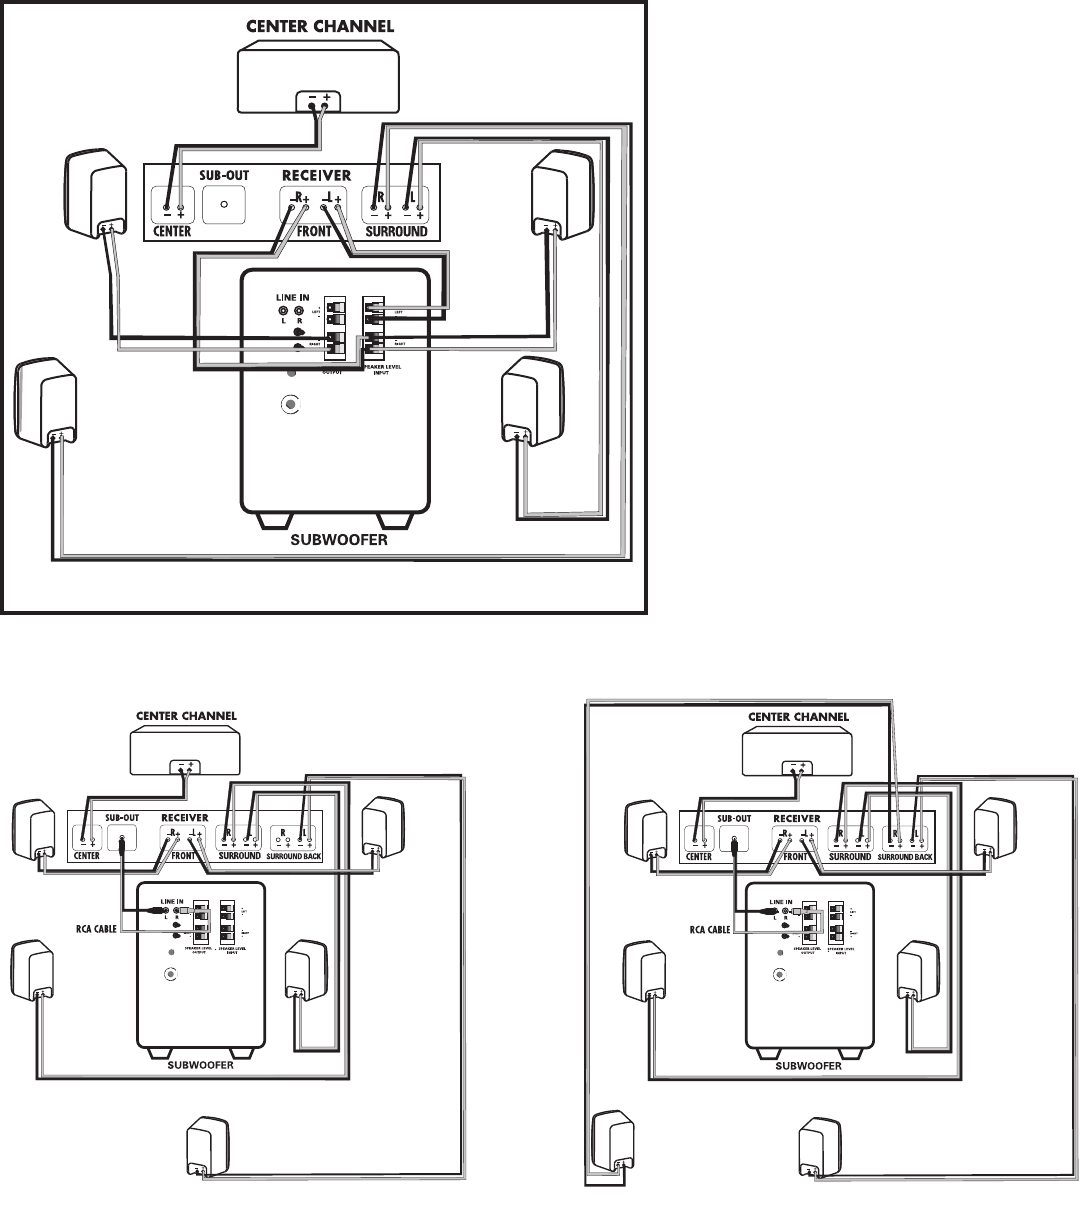 kenwood kdc mp142 wiring diagram wirdig wiring diagrams on kenwood kdc mp142 wiring diagram